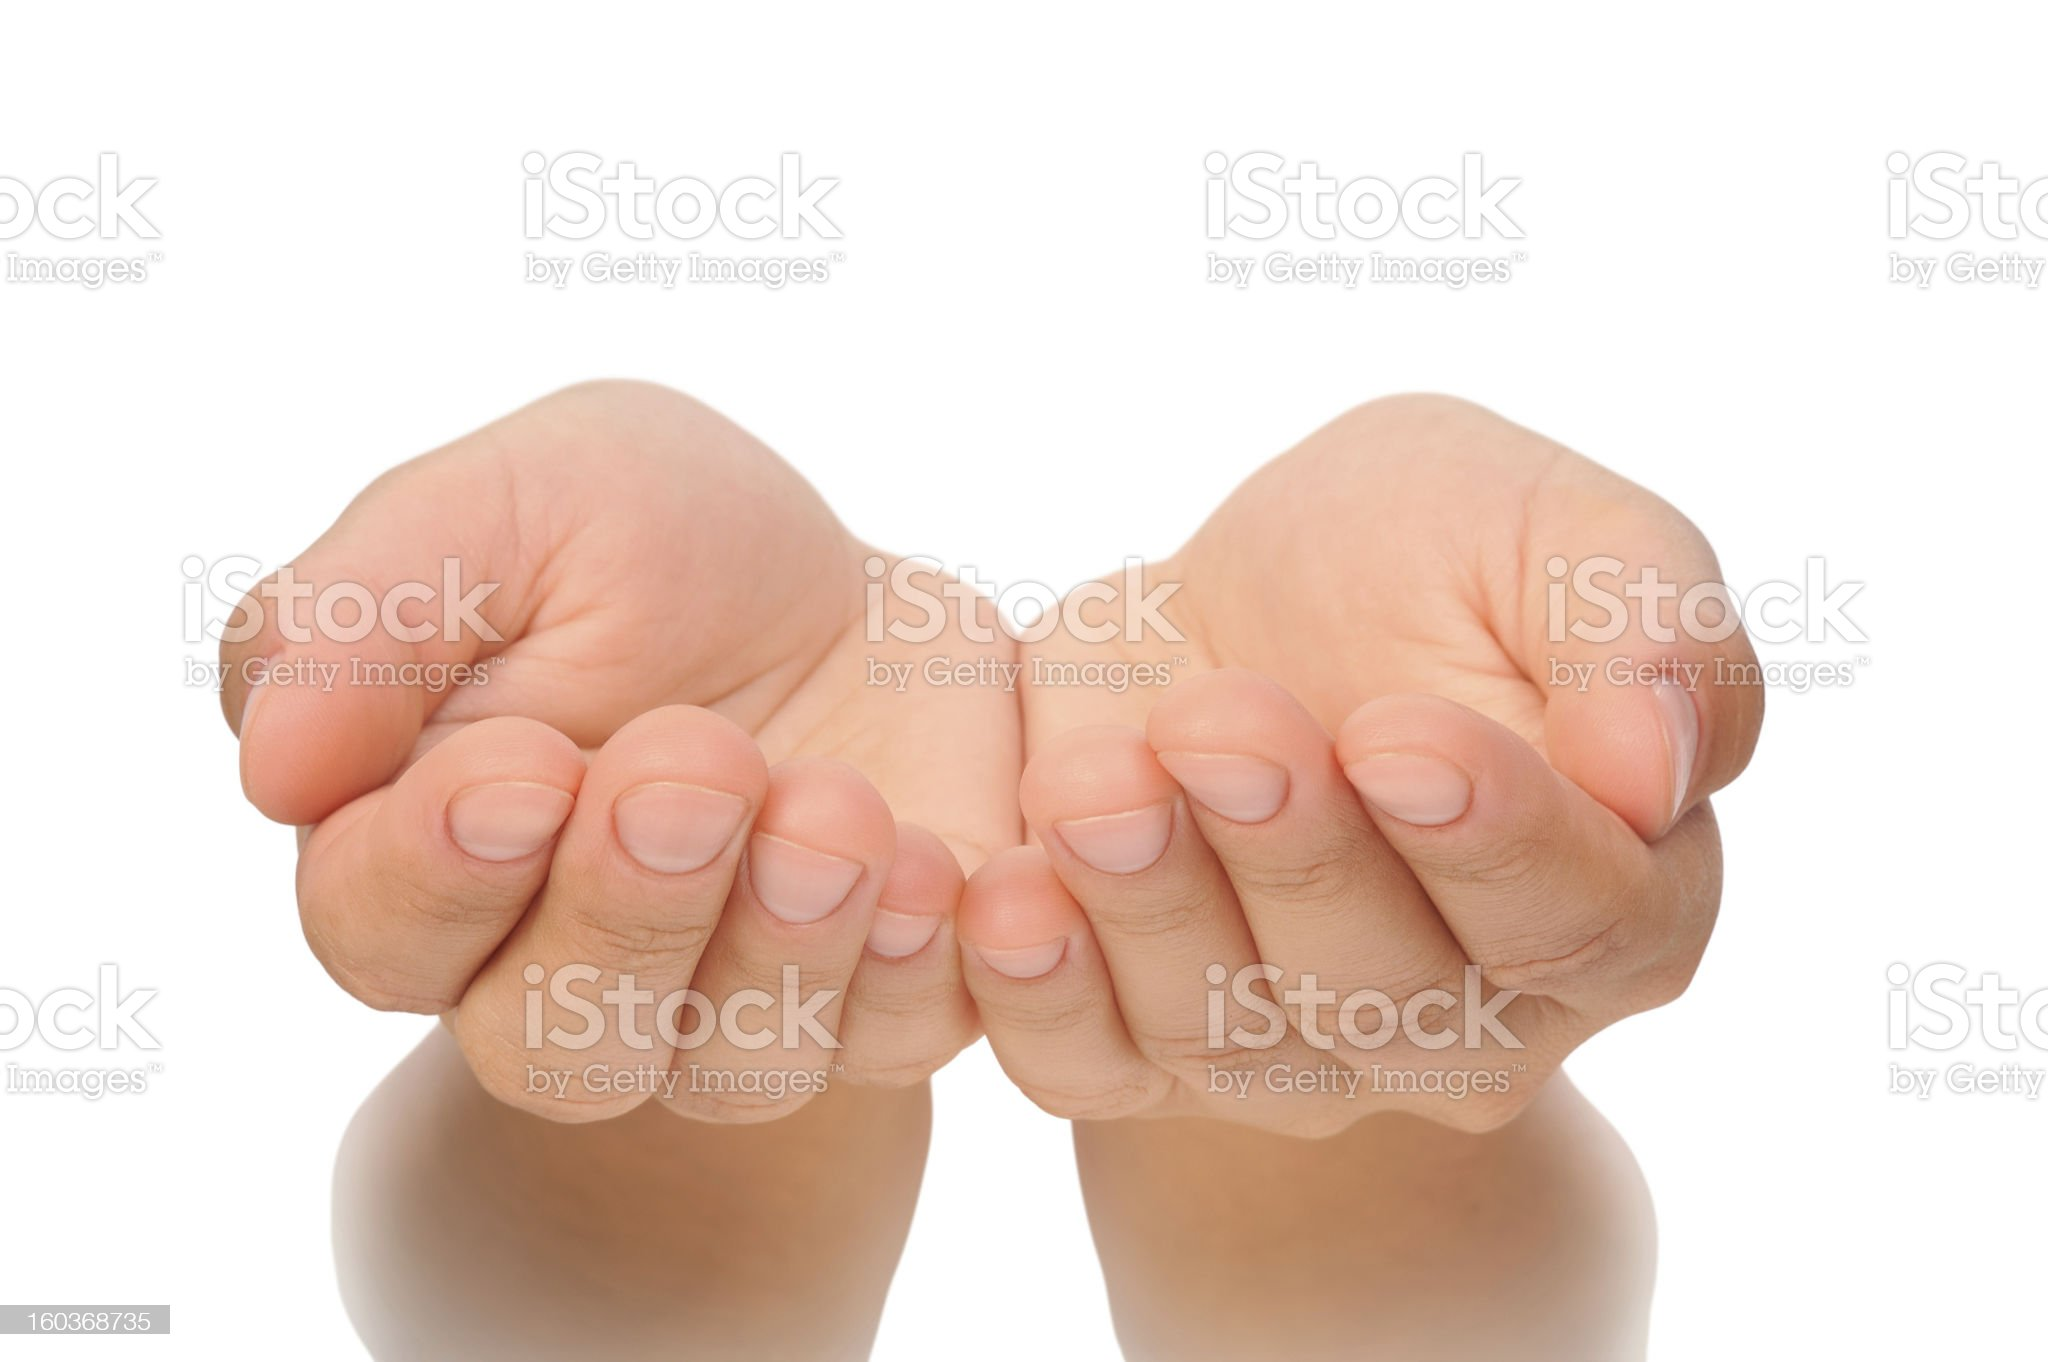 Beautiful cupped hands of young woman - cut out royalty-free stock photo